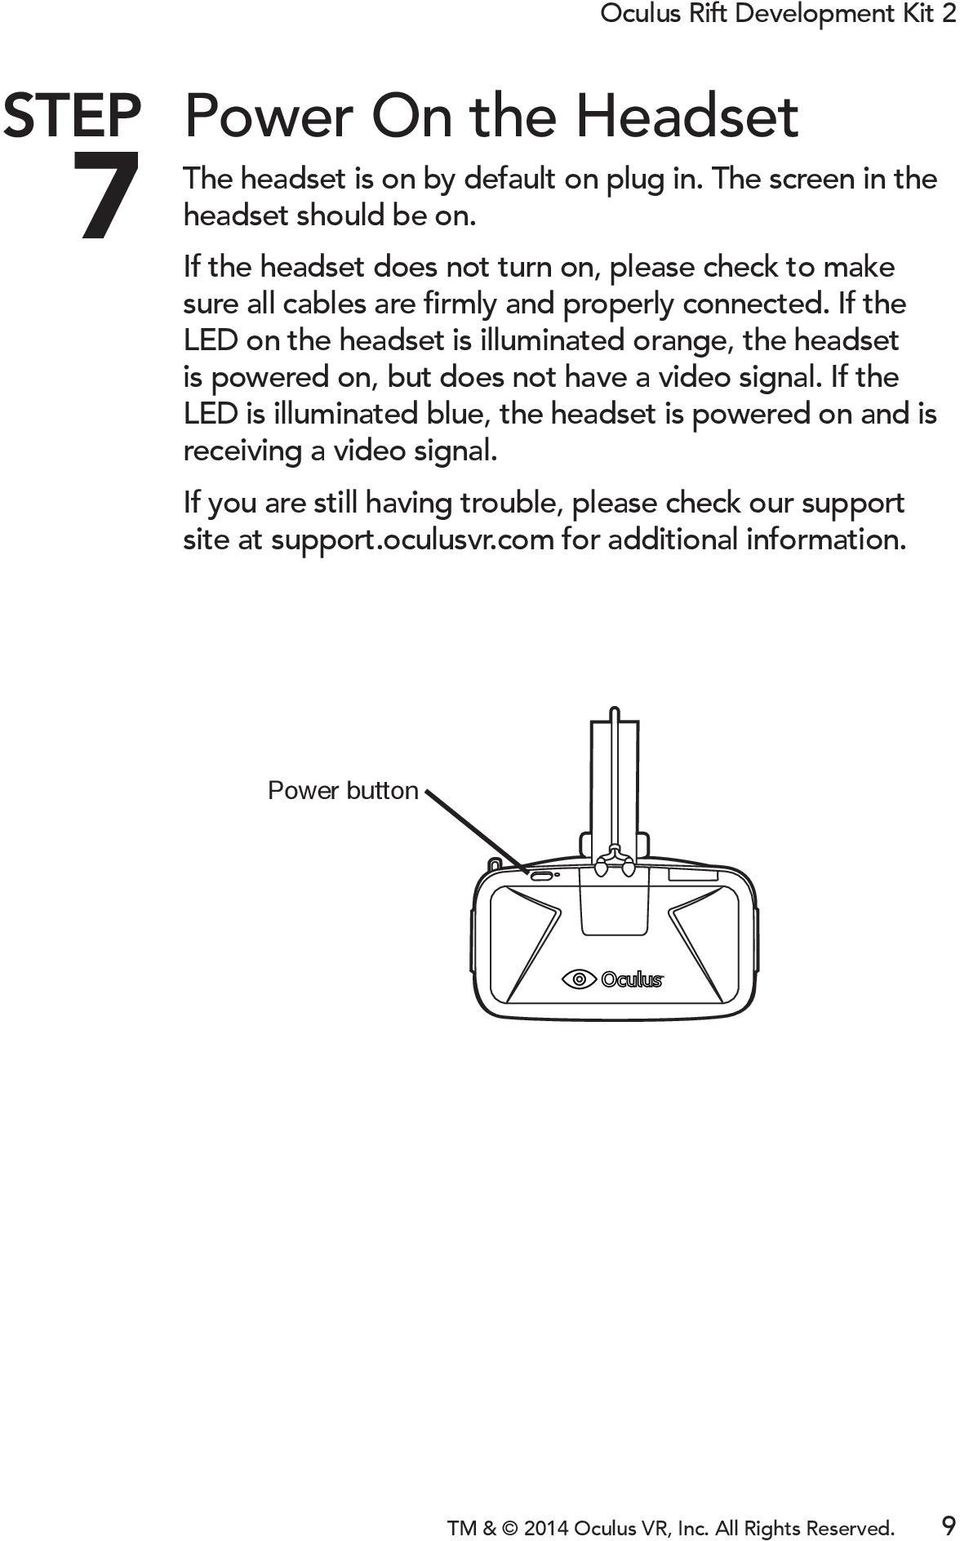 If the LED on the headset is illuminated orange, the headset is powered on, but does not have a video signal.